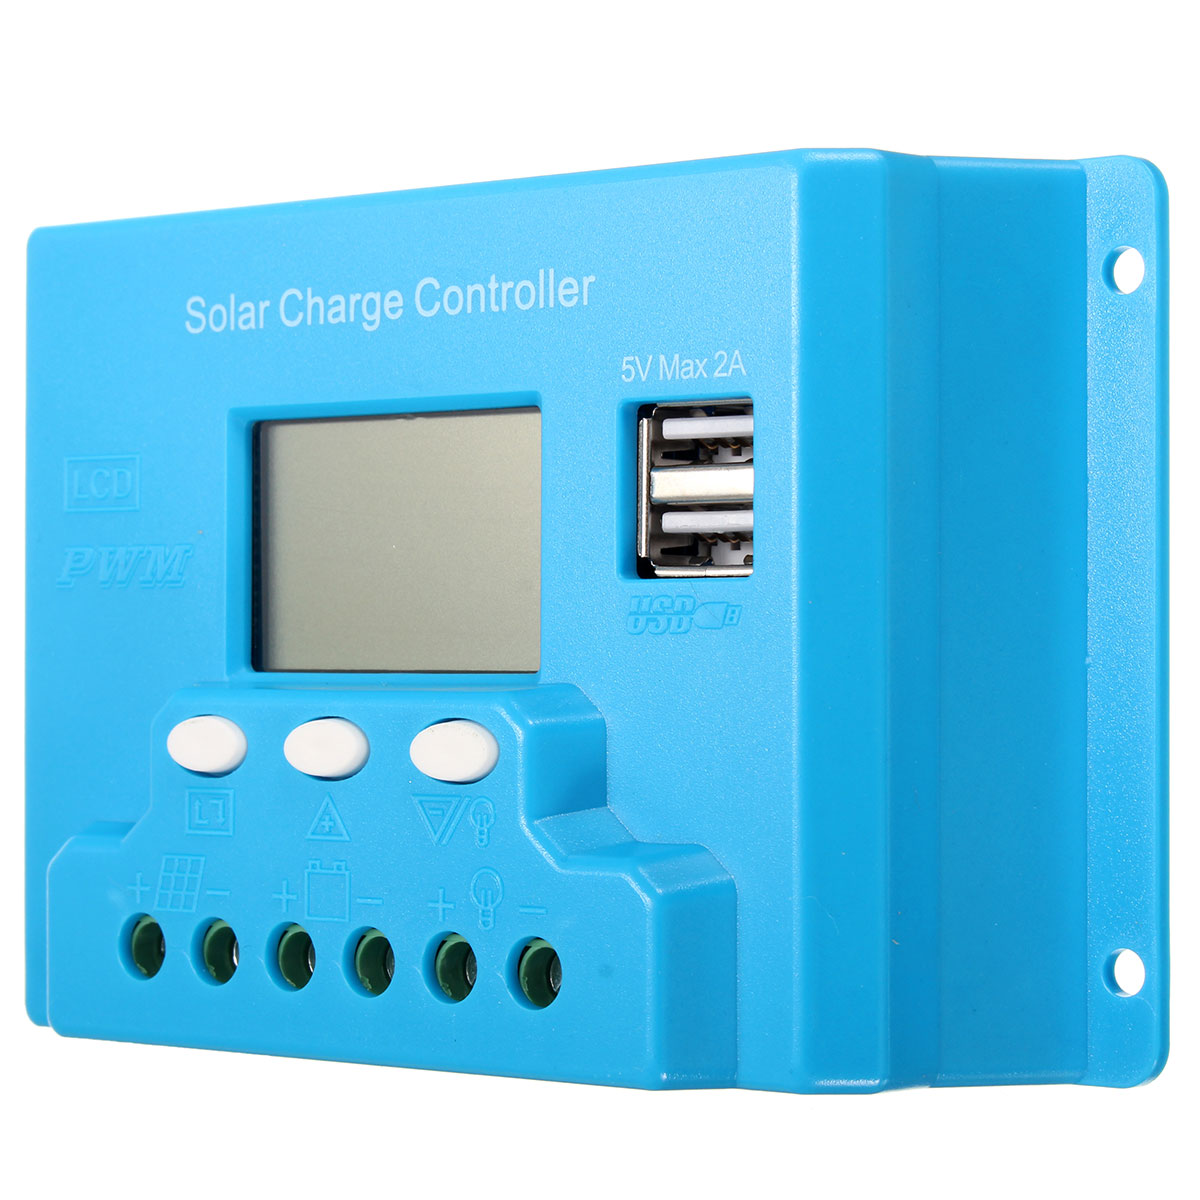 10a 20a 30a Lcd Pwm Solar Panel Charge Controller Battery Regulator 12v Charger Charging Alex 36ad8a57 81a6 F859 B9e6 C1d6041109c6